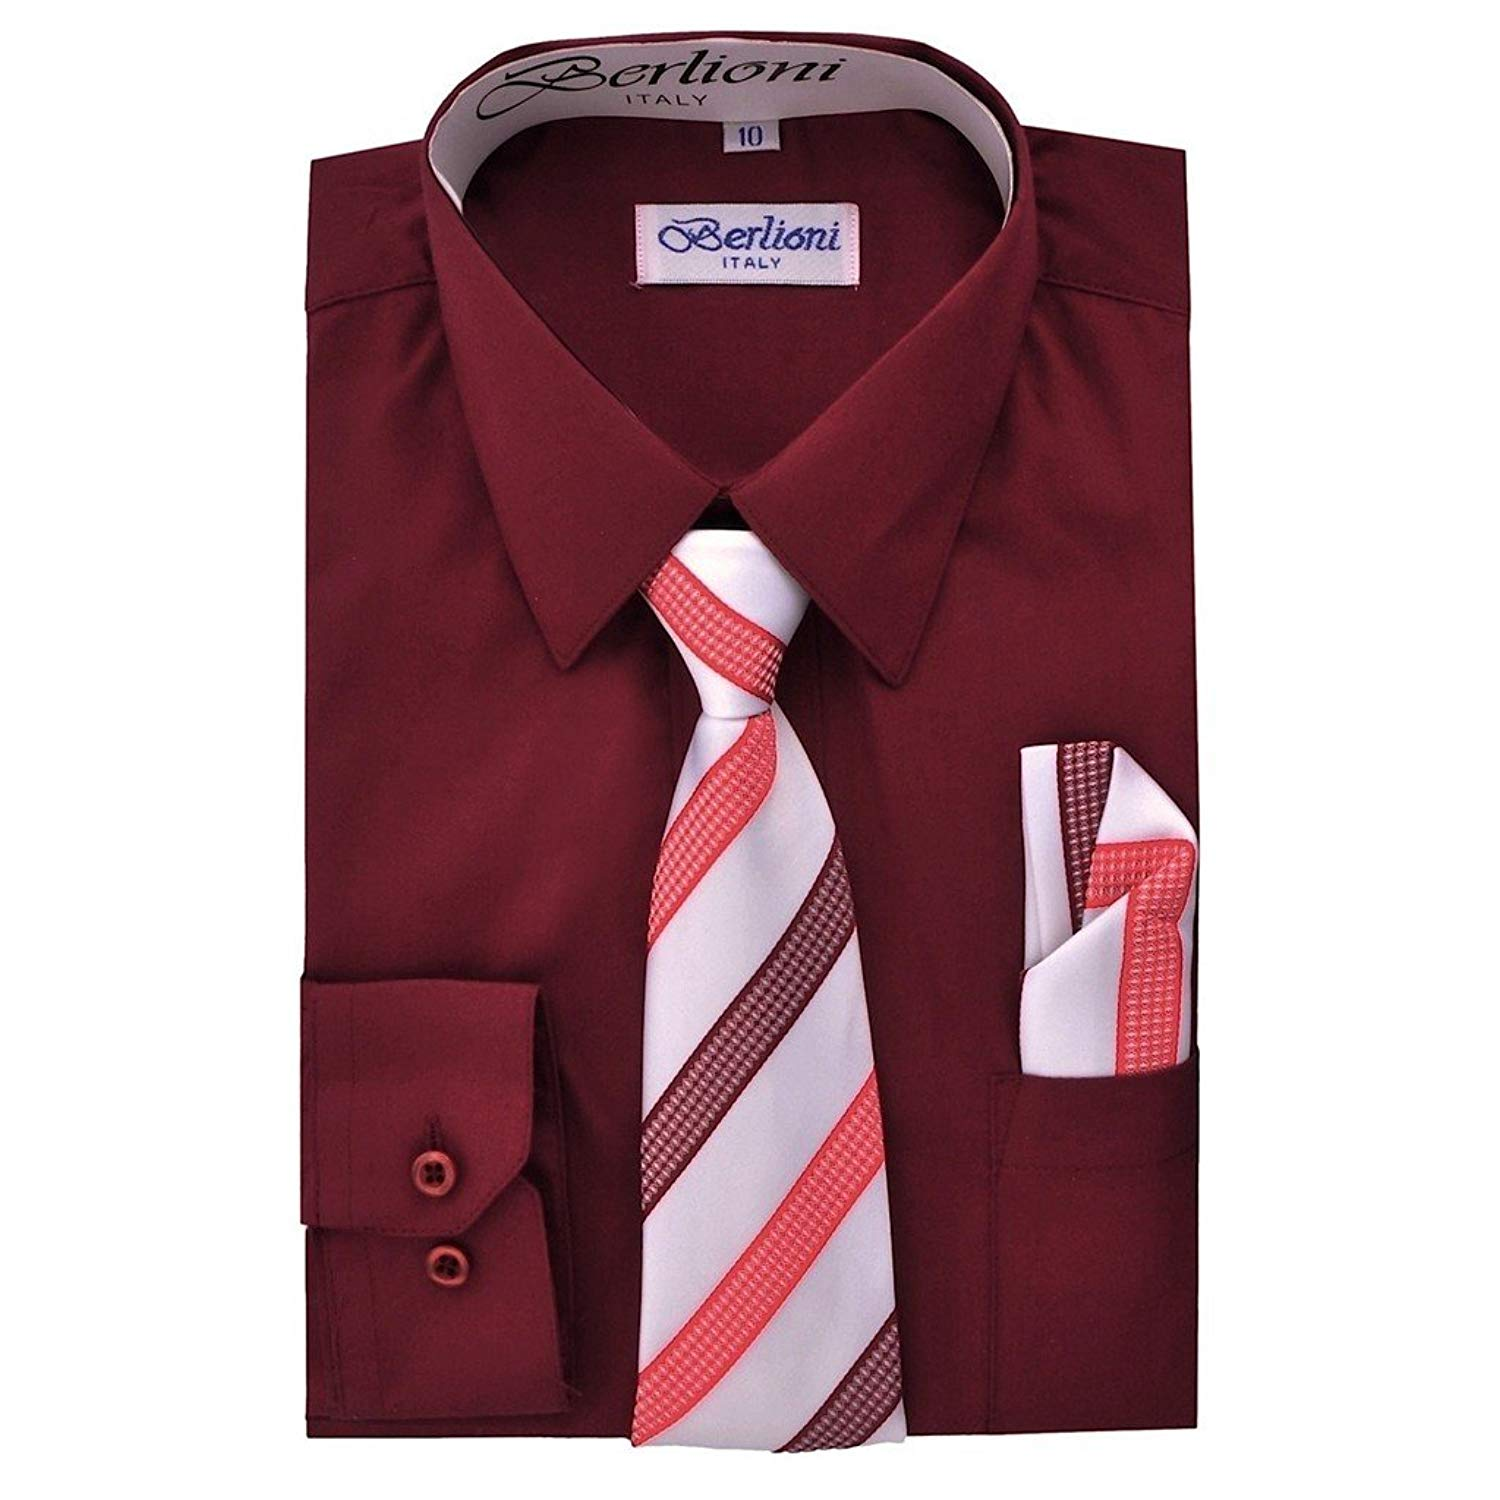 9a14ae145 Get Quotations · iGirldress Boys Solid Dress Shirt Tie and Hanky Set